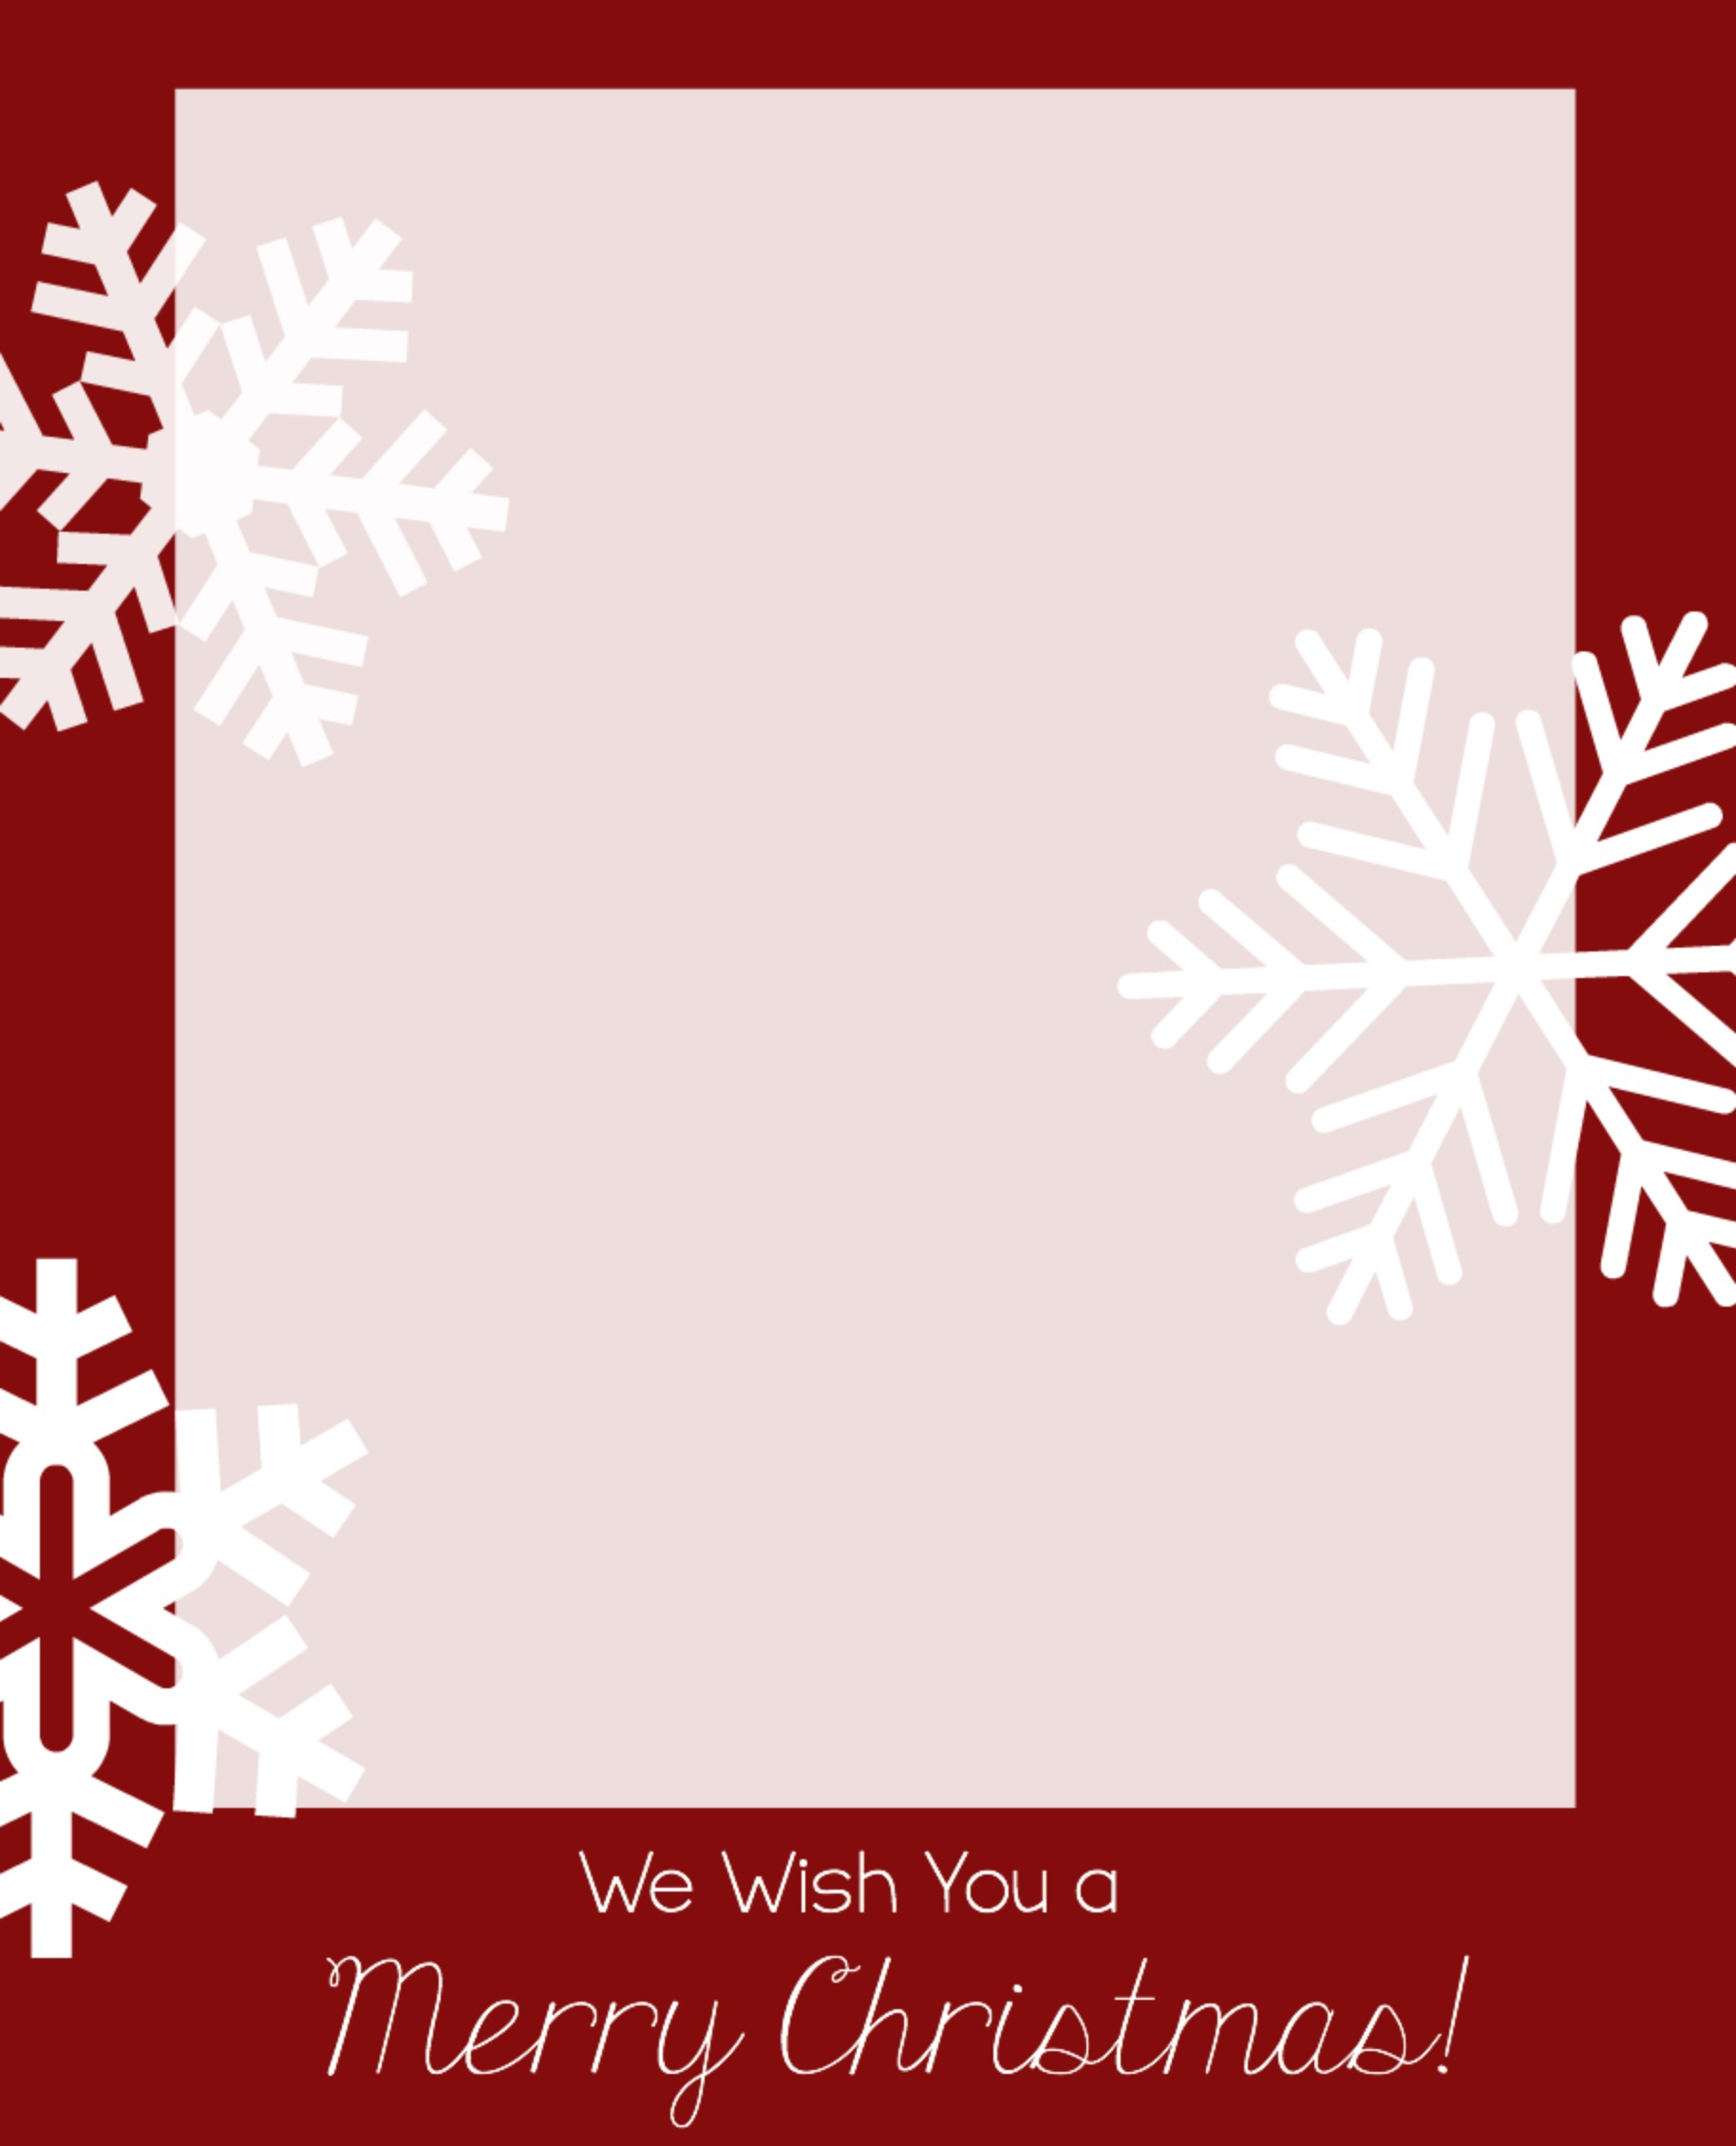 Microsoft Christmas Card Templates Geccetackletarts